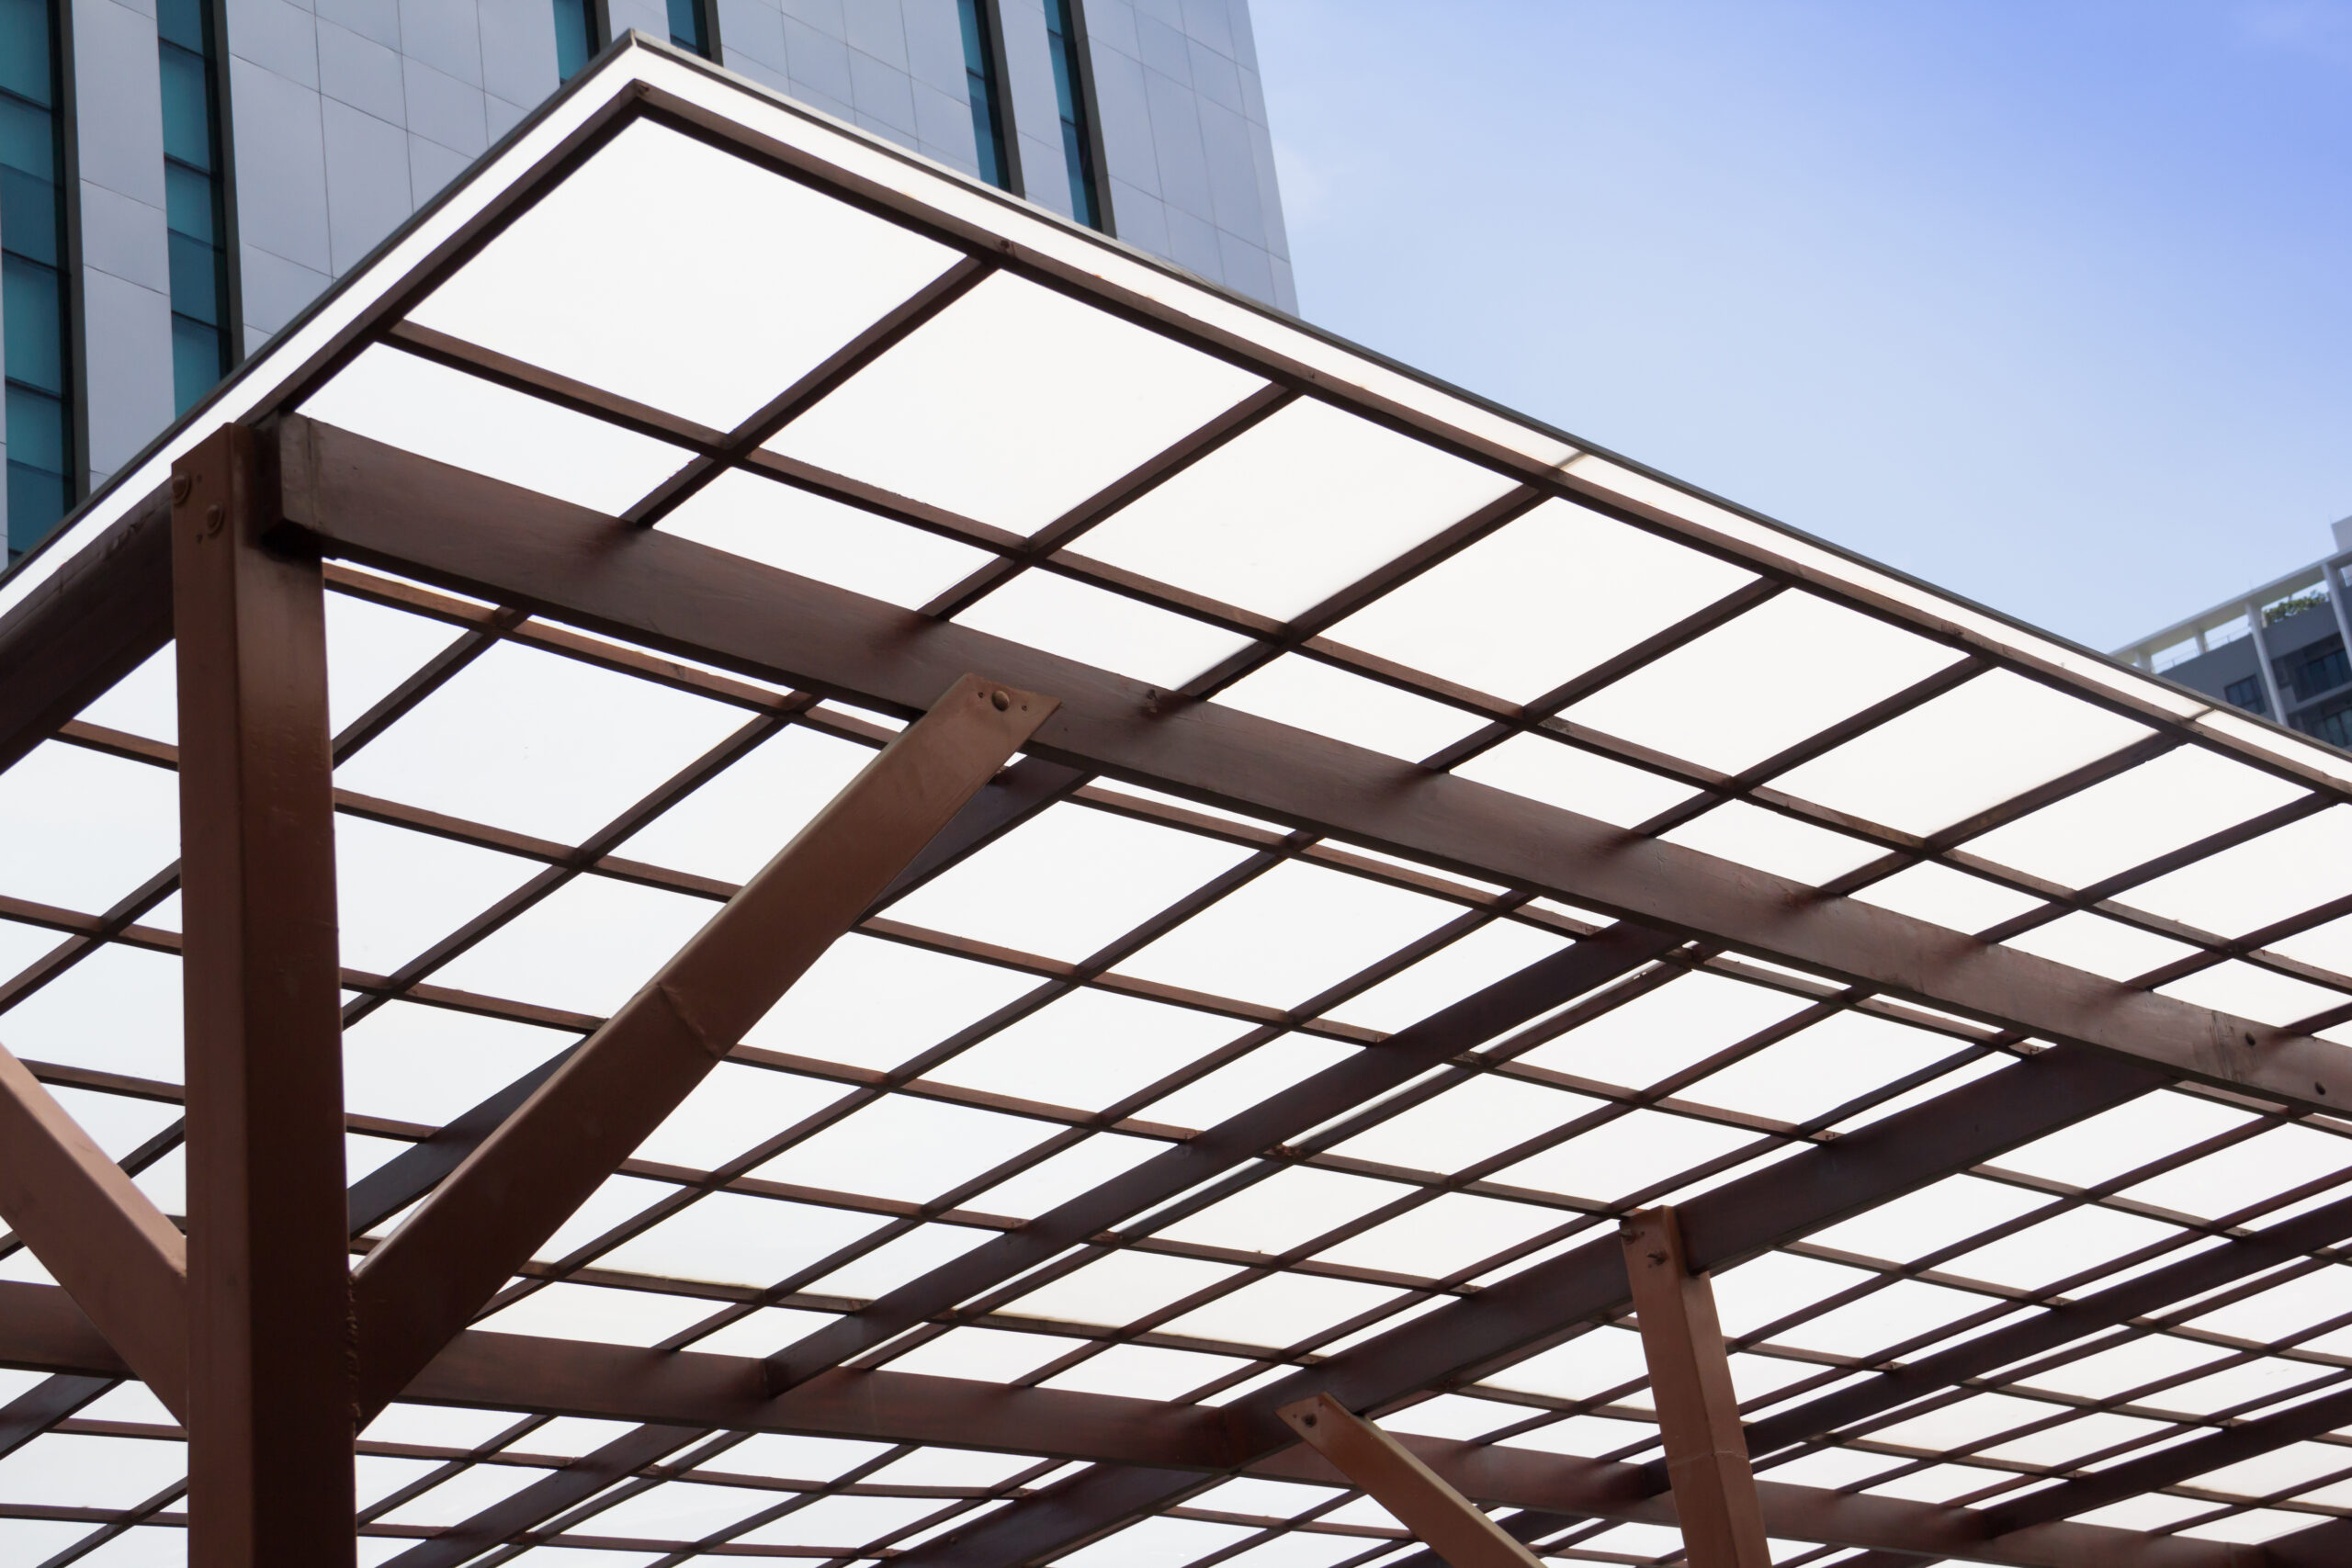 roof made with polycarbonate sheet